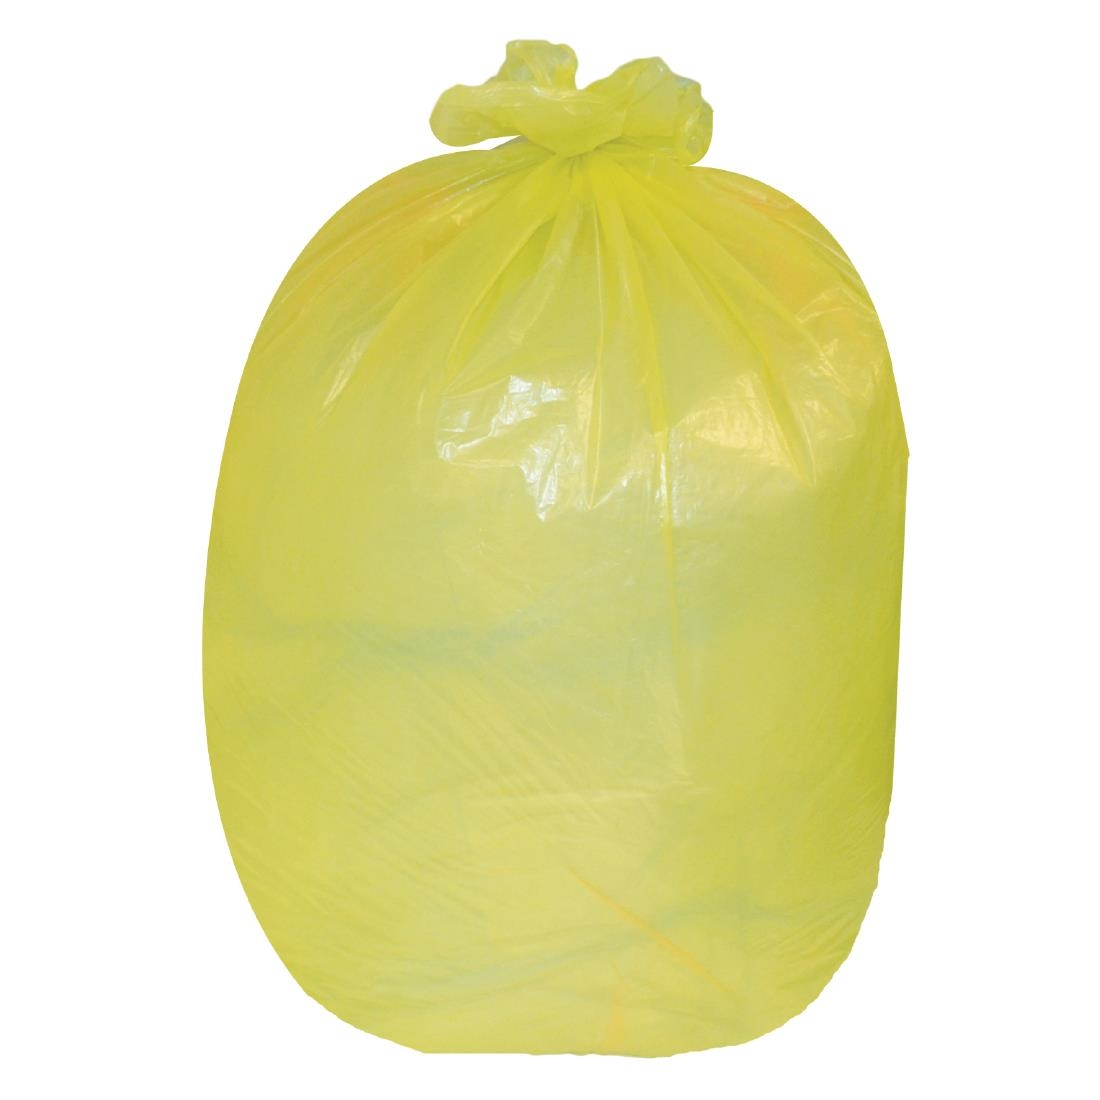 Image of Jantex Large Medium Duty Yellow Bin Bags 90Ltr (Pack of 200) Pack of 200